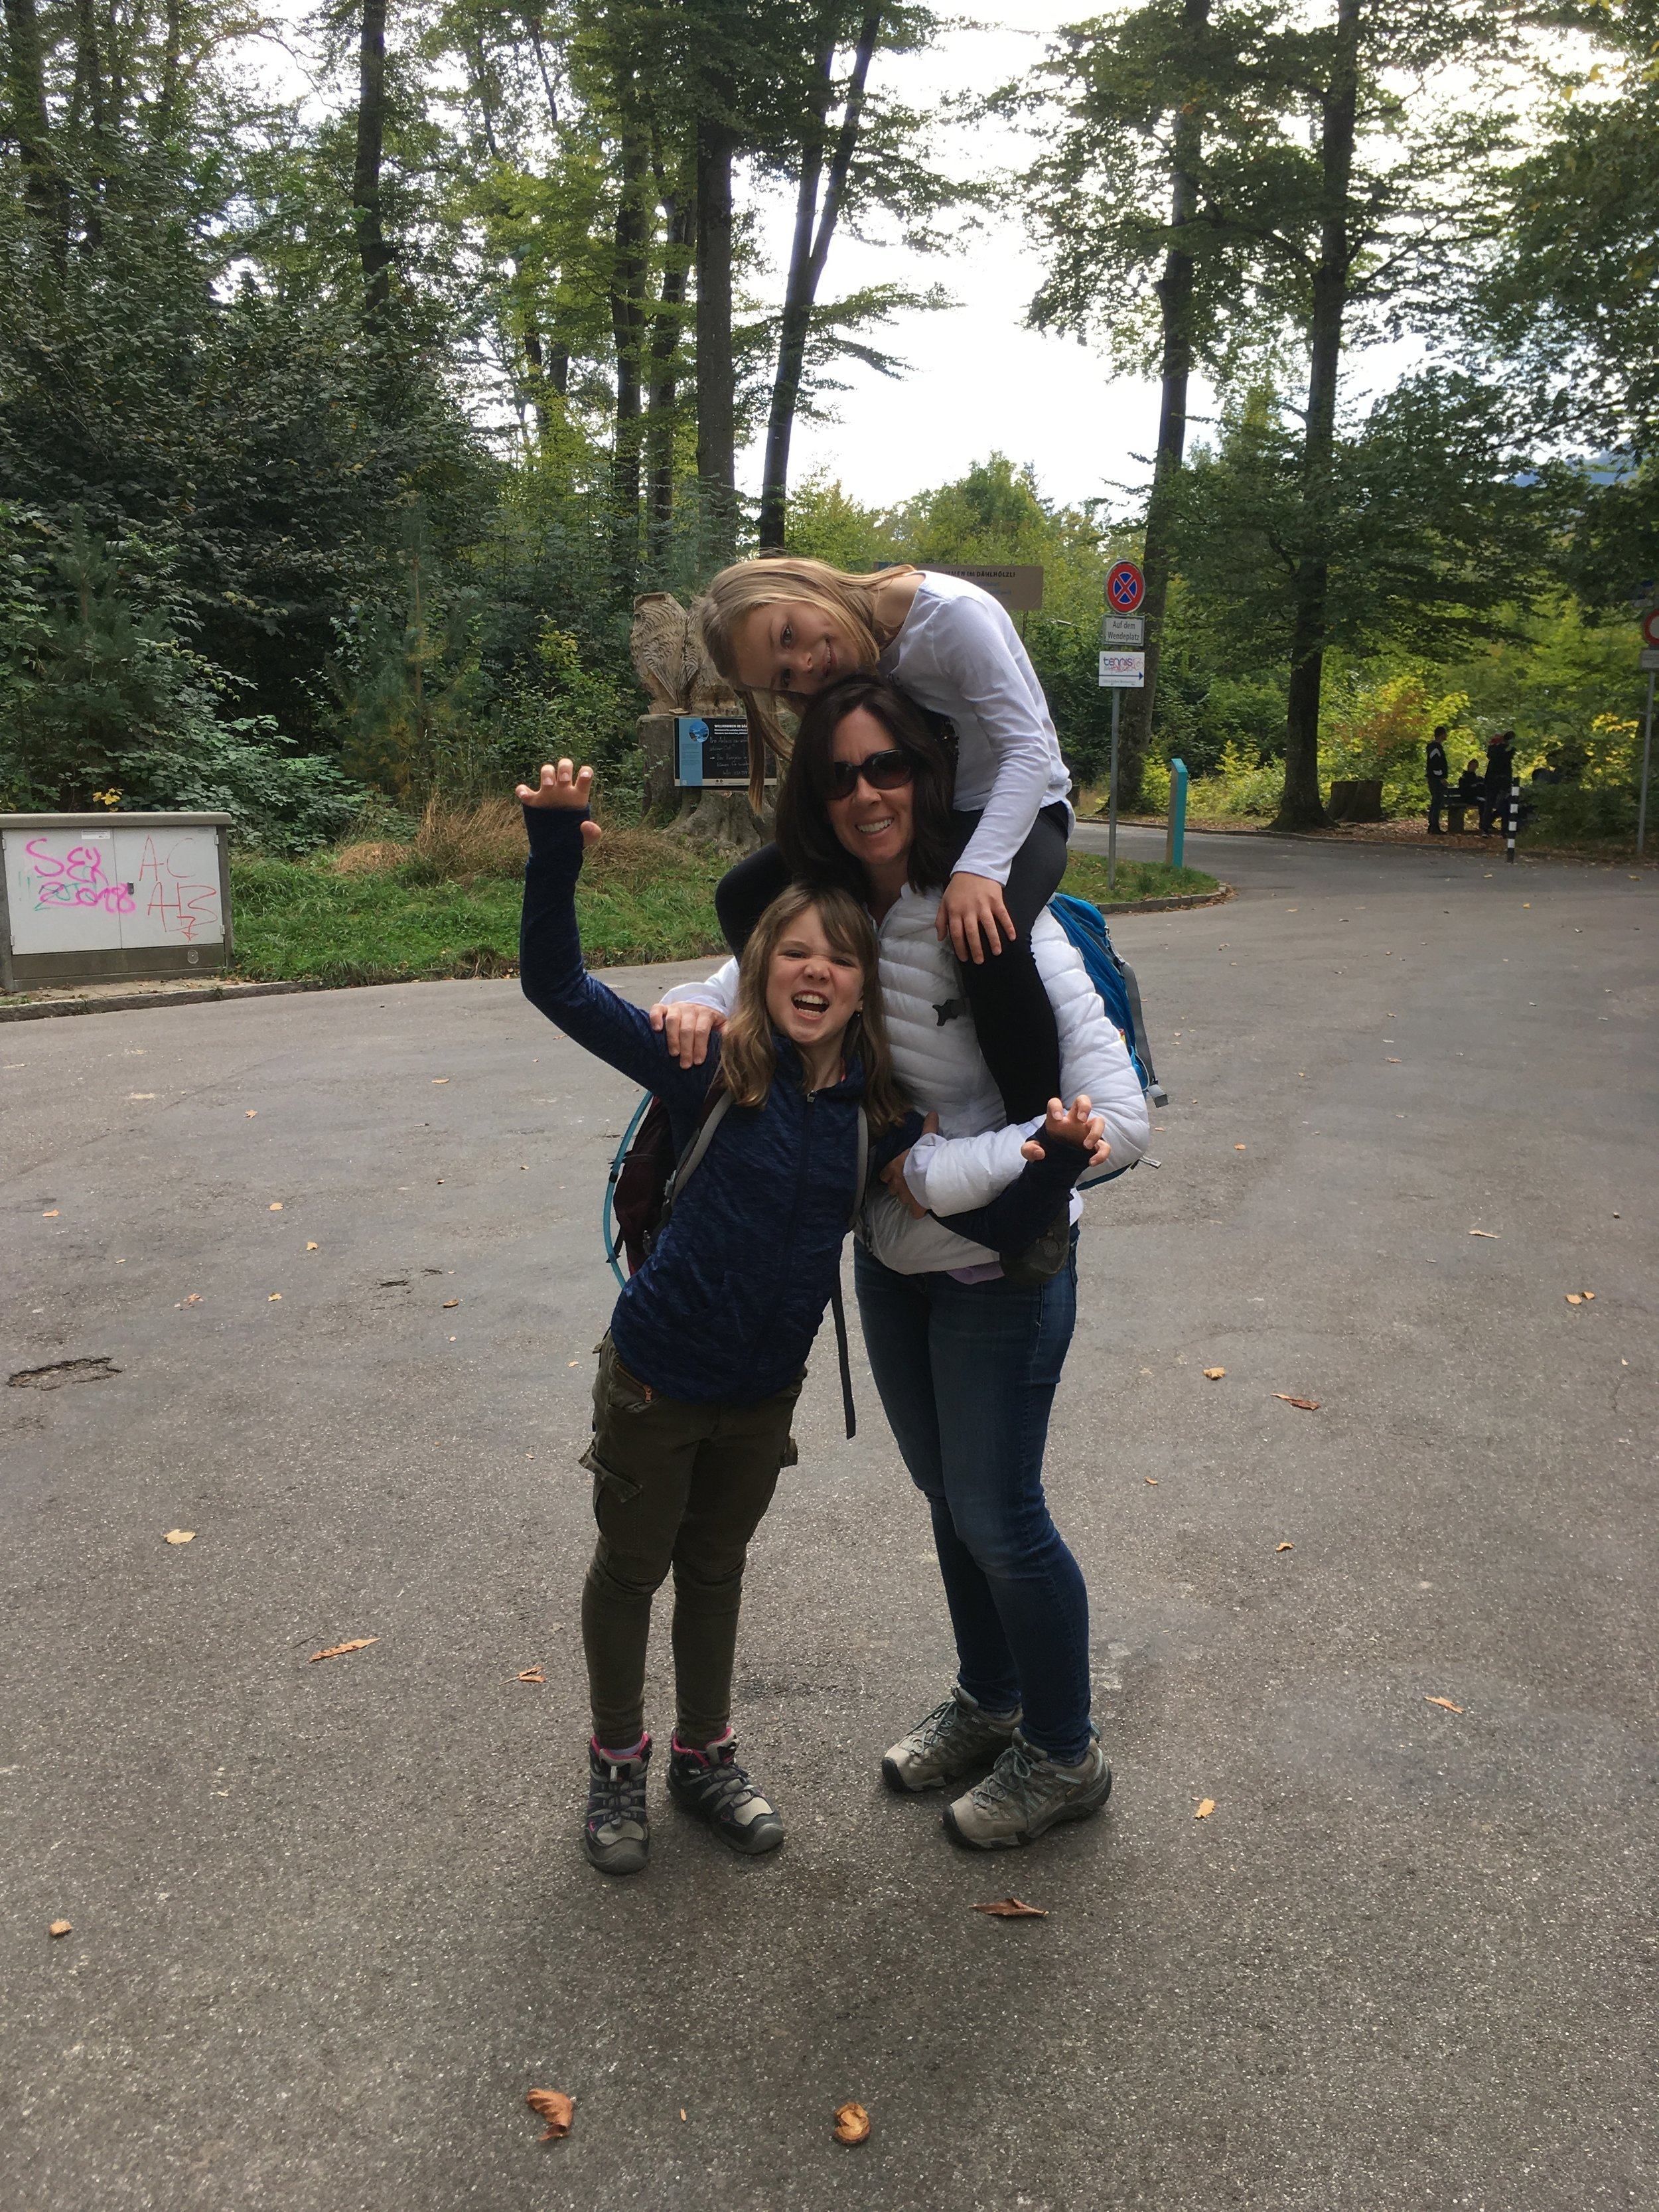 7 years ago I have the big one on my shoulders and the little one snuggled in the ergo carrier…dreaming of a time where we made this move together as a family - who knew that the time would come and one kid would still be making me the proverbial packhorse?